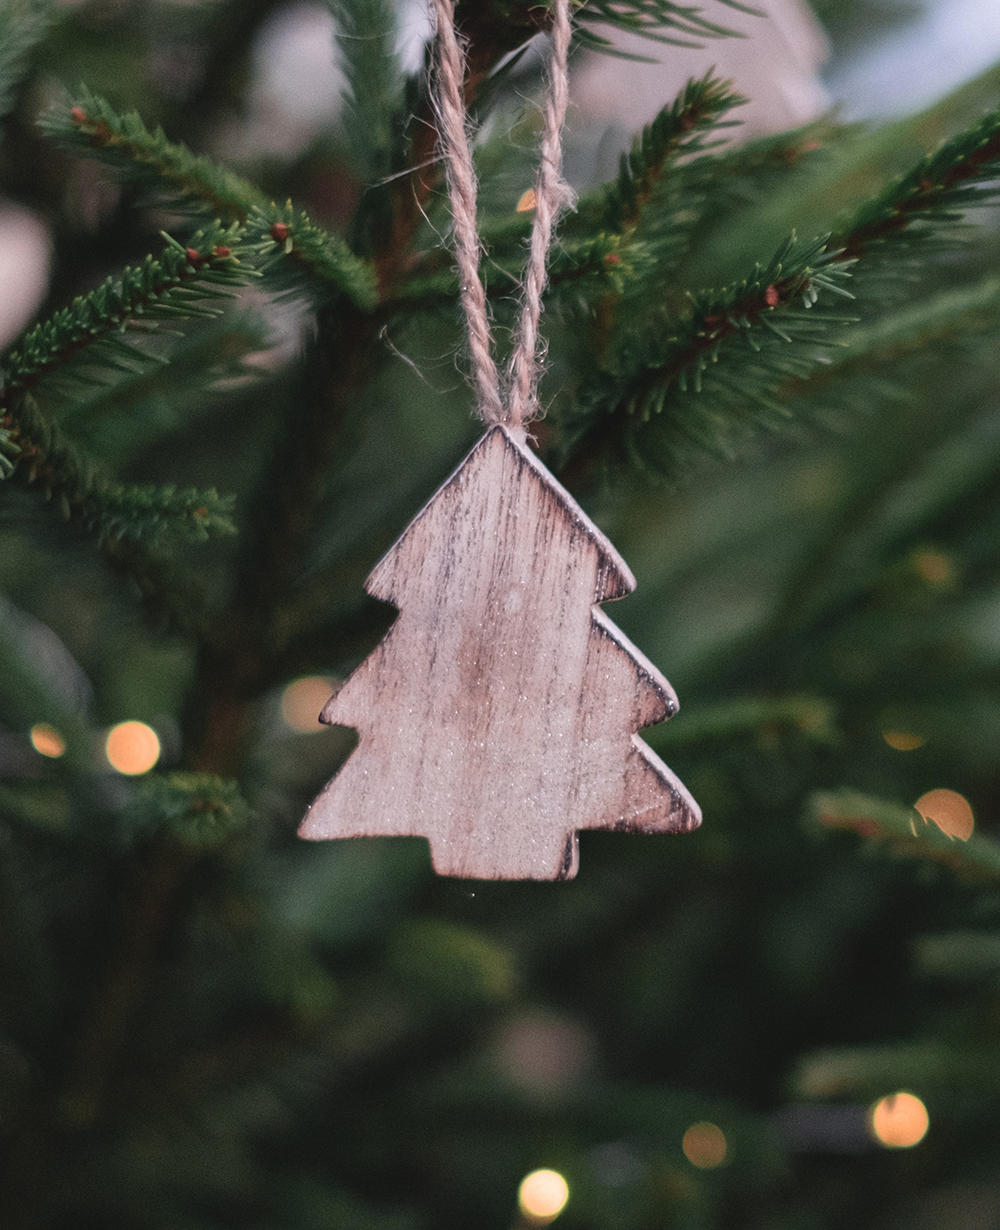 Rustic simple wooden tree decoration.